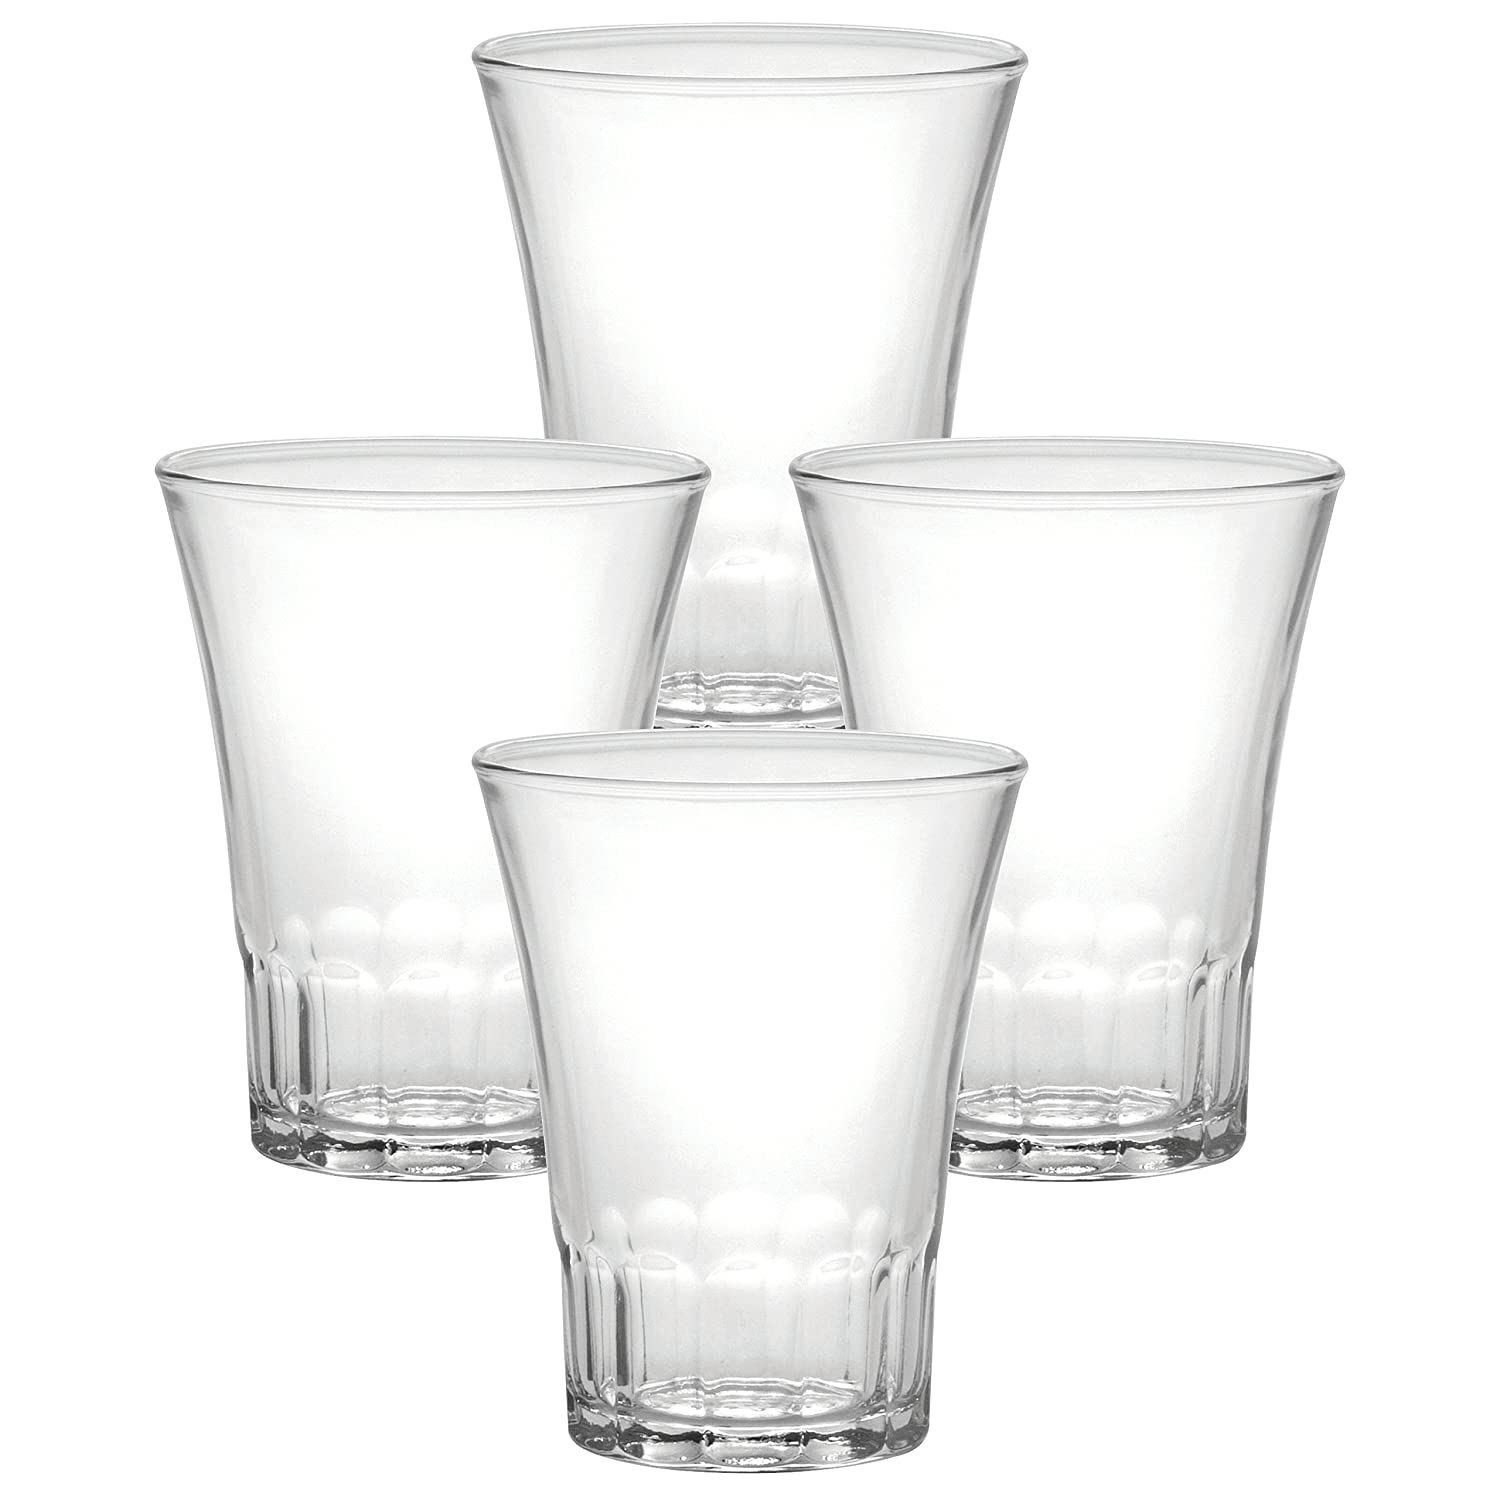 Duralex Amalfi Cl.21 Acqua Set of 4 Shot Glasses 1005AC04/4